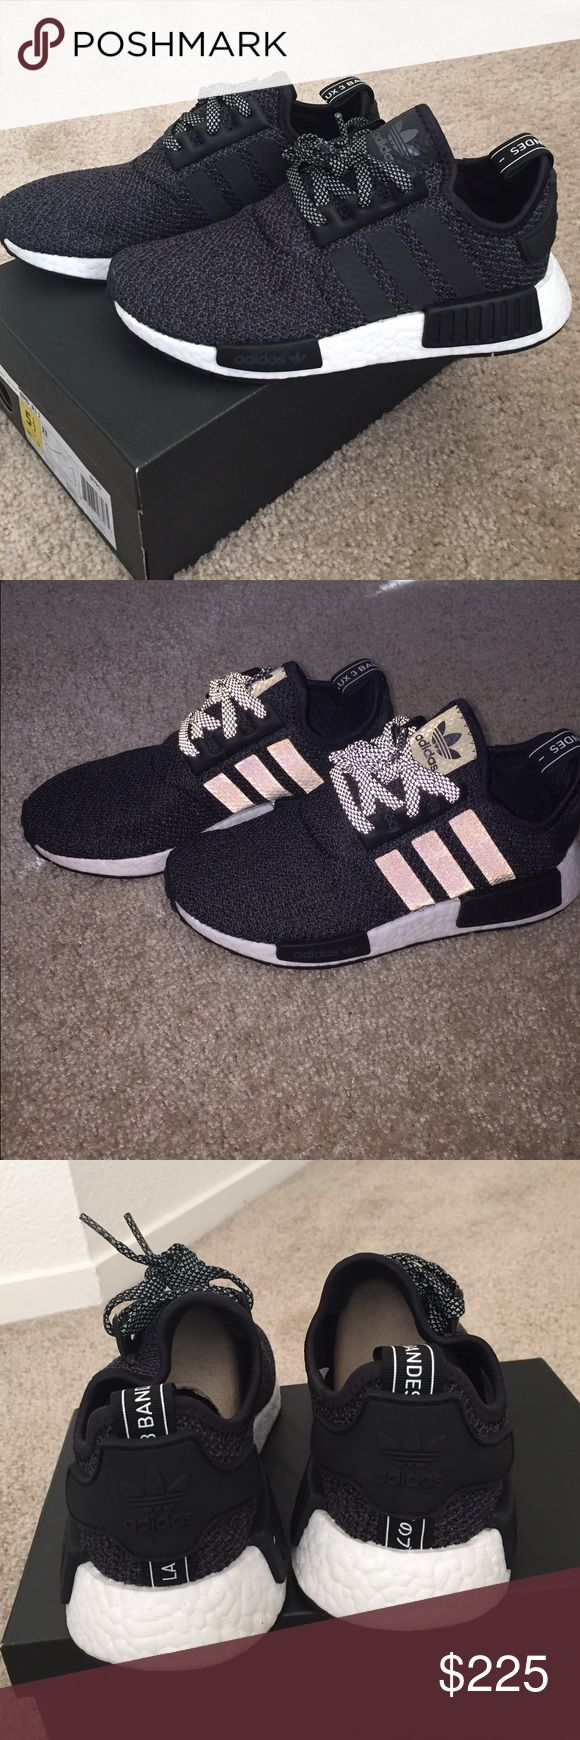 be04d43ca3cc1 Coupon Adidas Originals Nmd Size 37 Running Shoes Online India ...